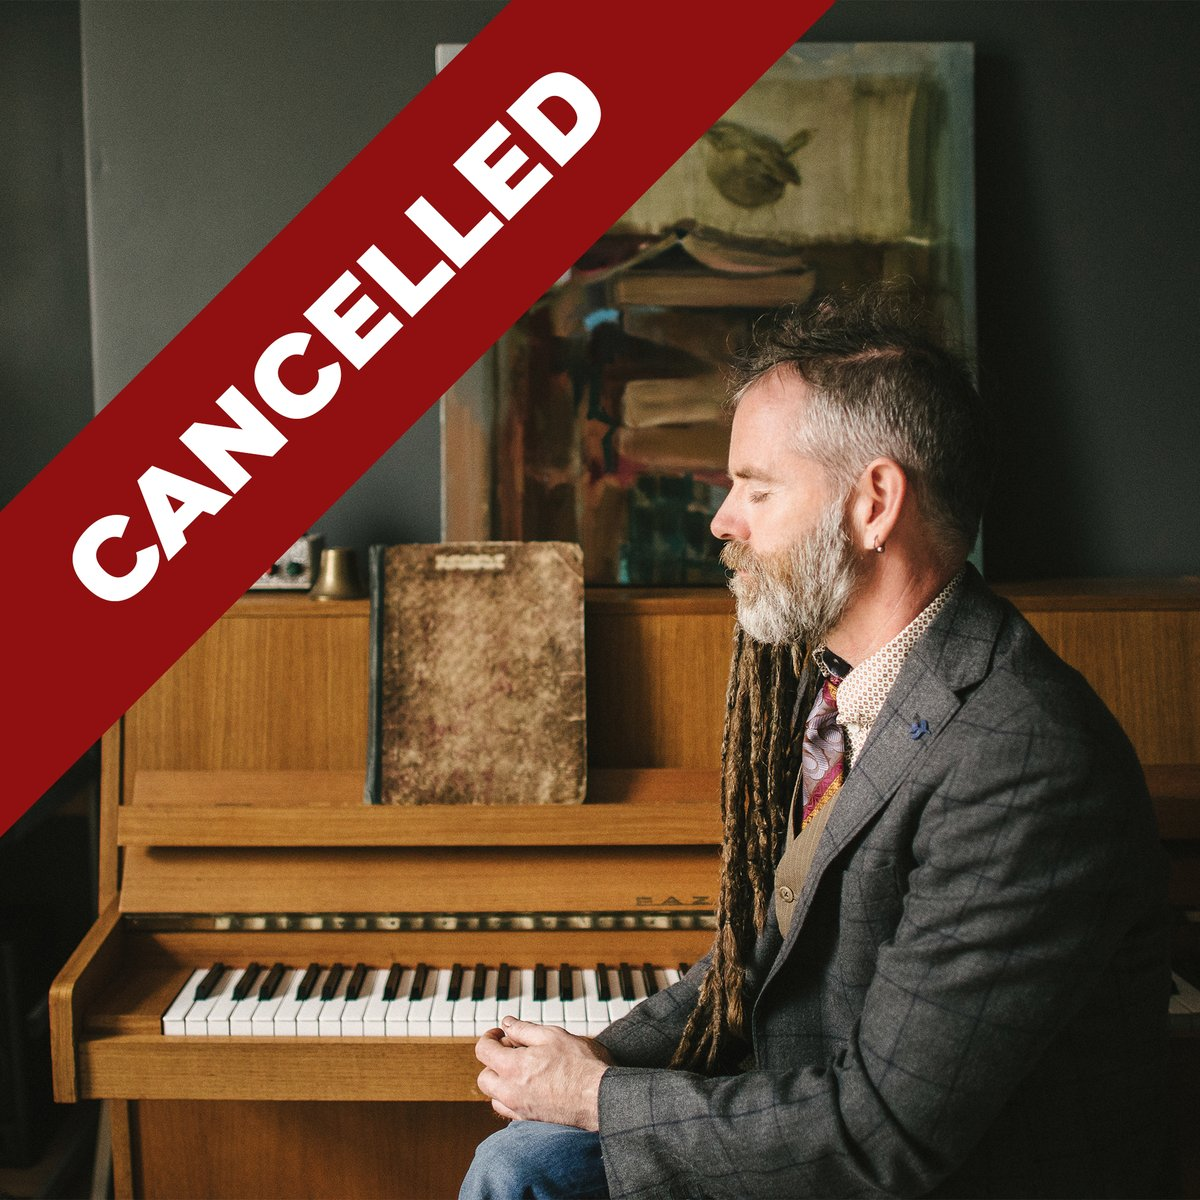 Very regrettably we have had to cancel @DukeSpecial's gig tonight at the Walled Garden as he has tested positive on a lateral flow test. If you had tickets, please check your emails for information regarding your refund. We hope you understand the situation.